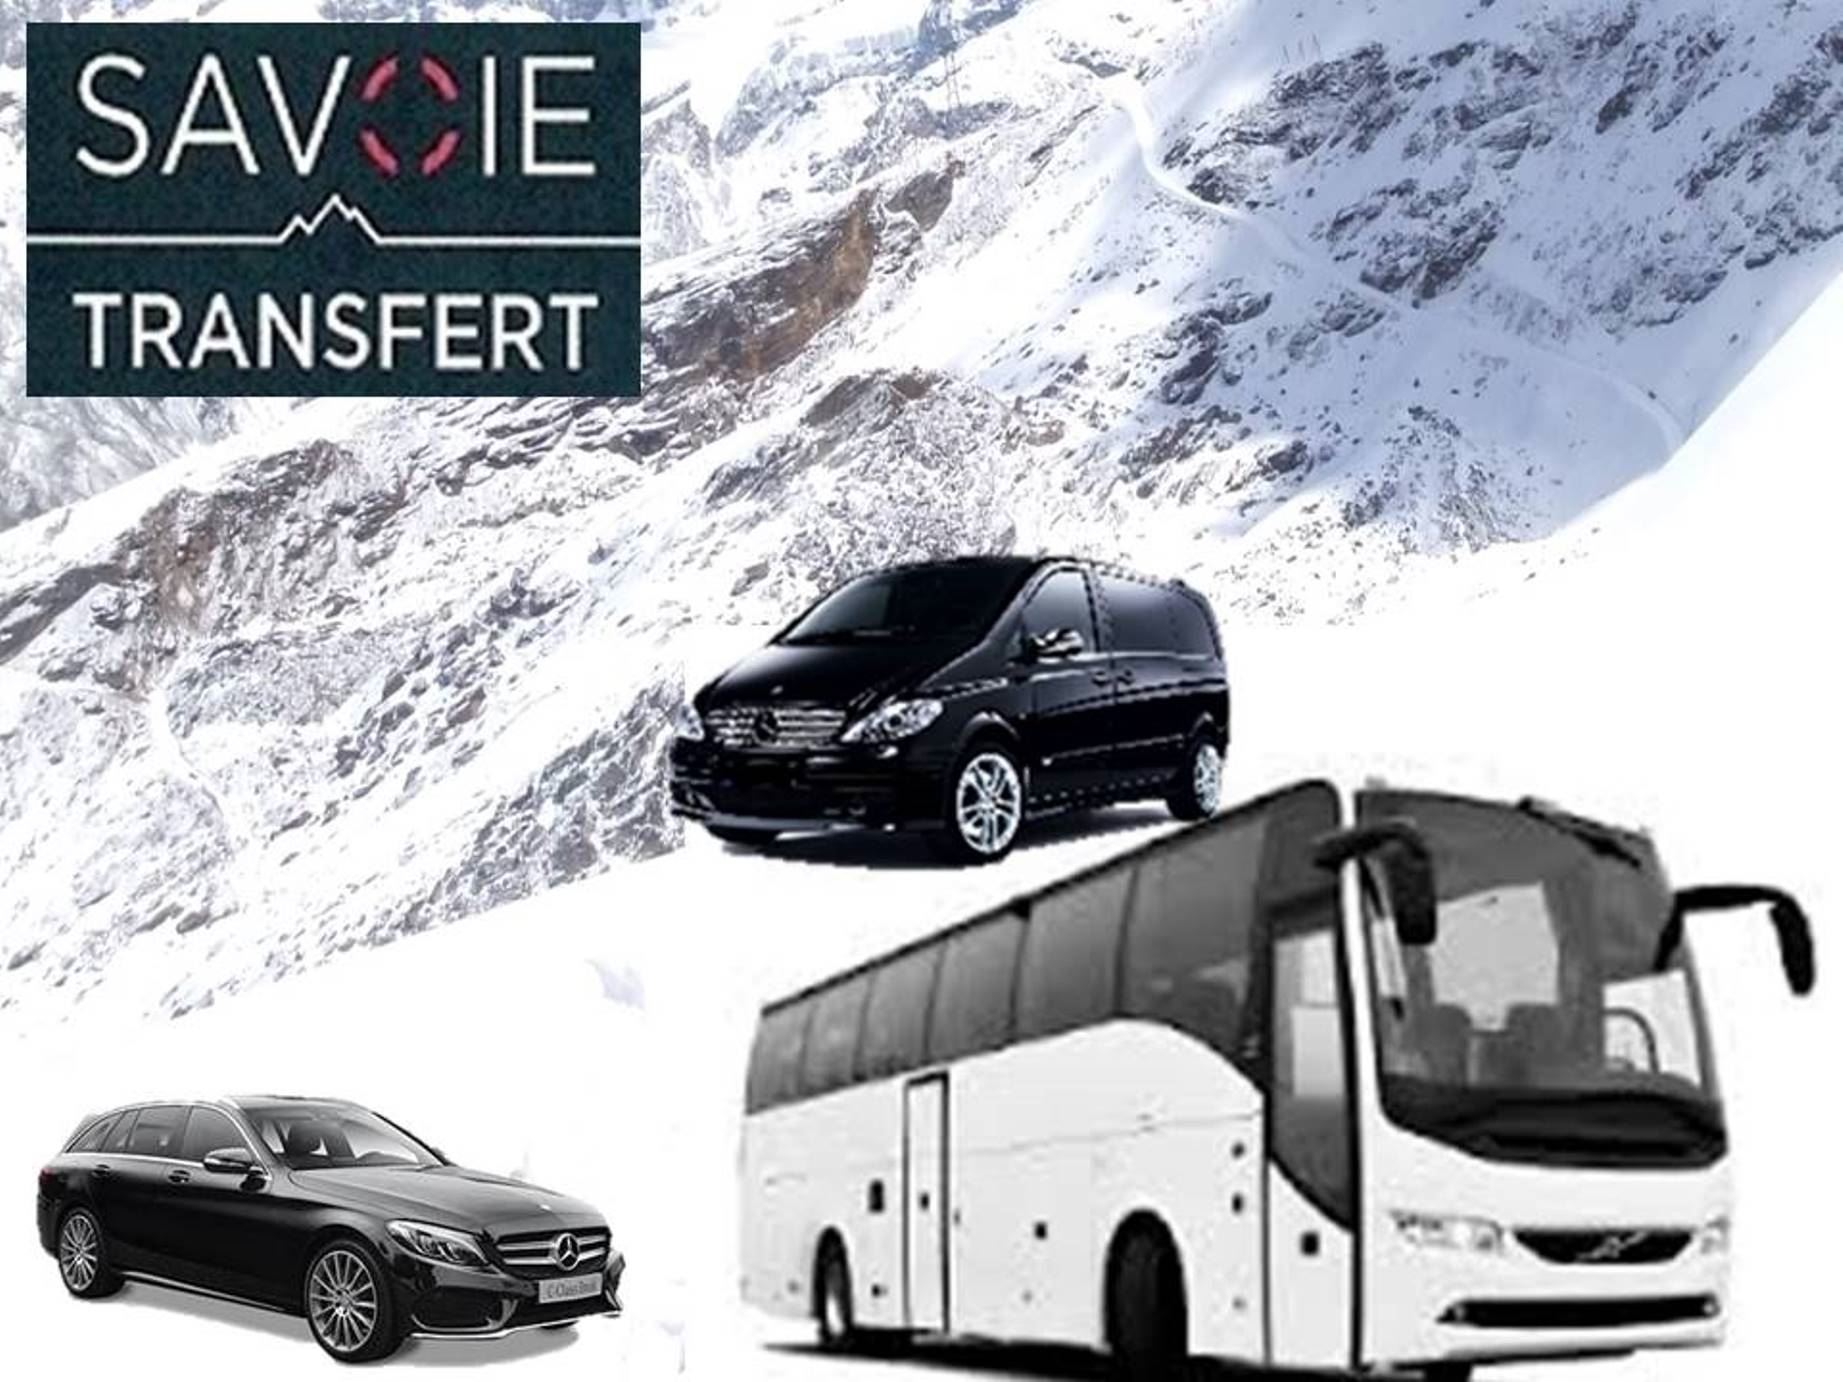 PRIVATE TRANSFER from CHAMBERY AIRPORT with VAL THORENS TRANSFERT